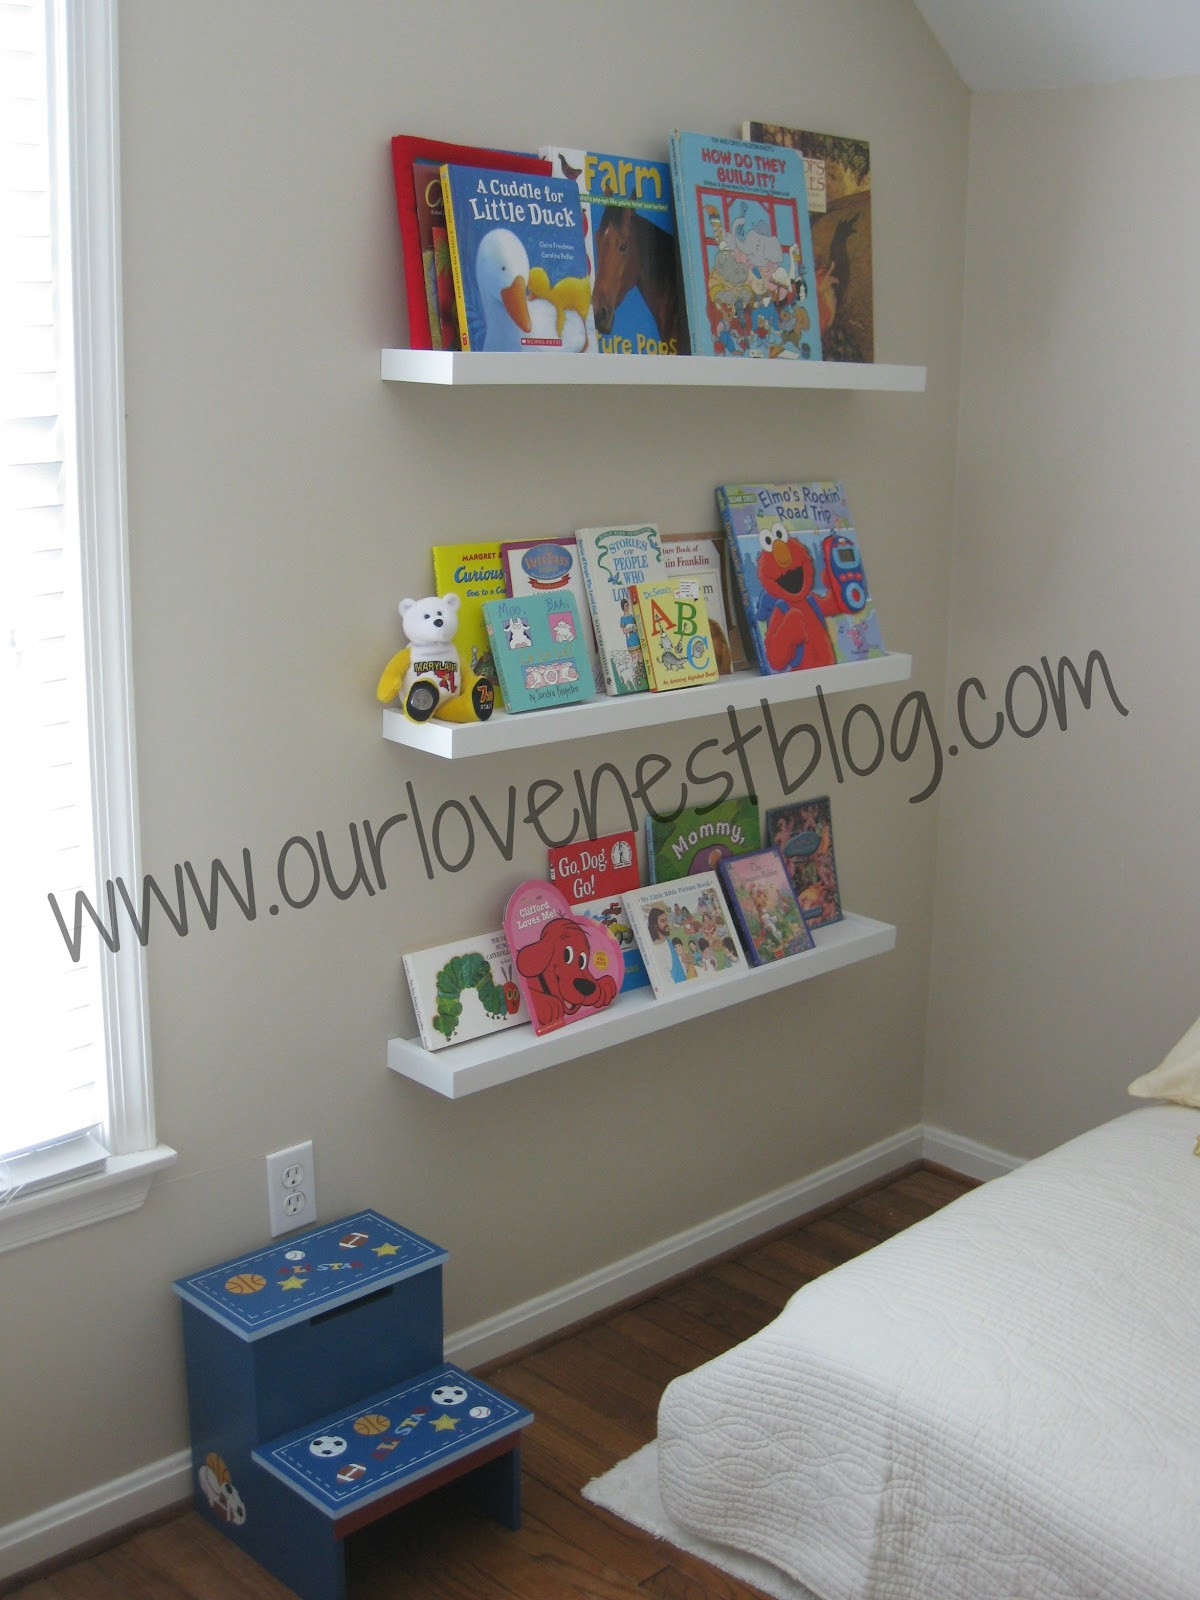 Best ideas about DIY Wall Bookshelf . Save or Pin Our Love Nest DIY Wall Hung Bookshelf & Reading Corner Now.